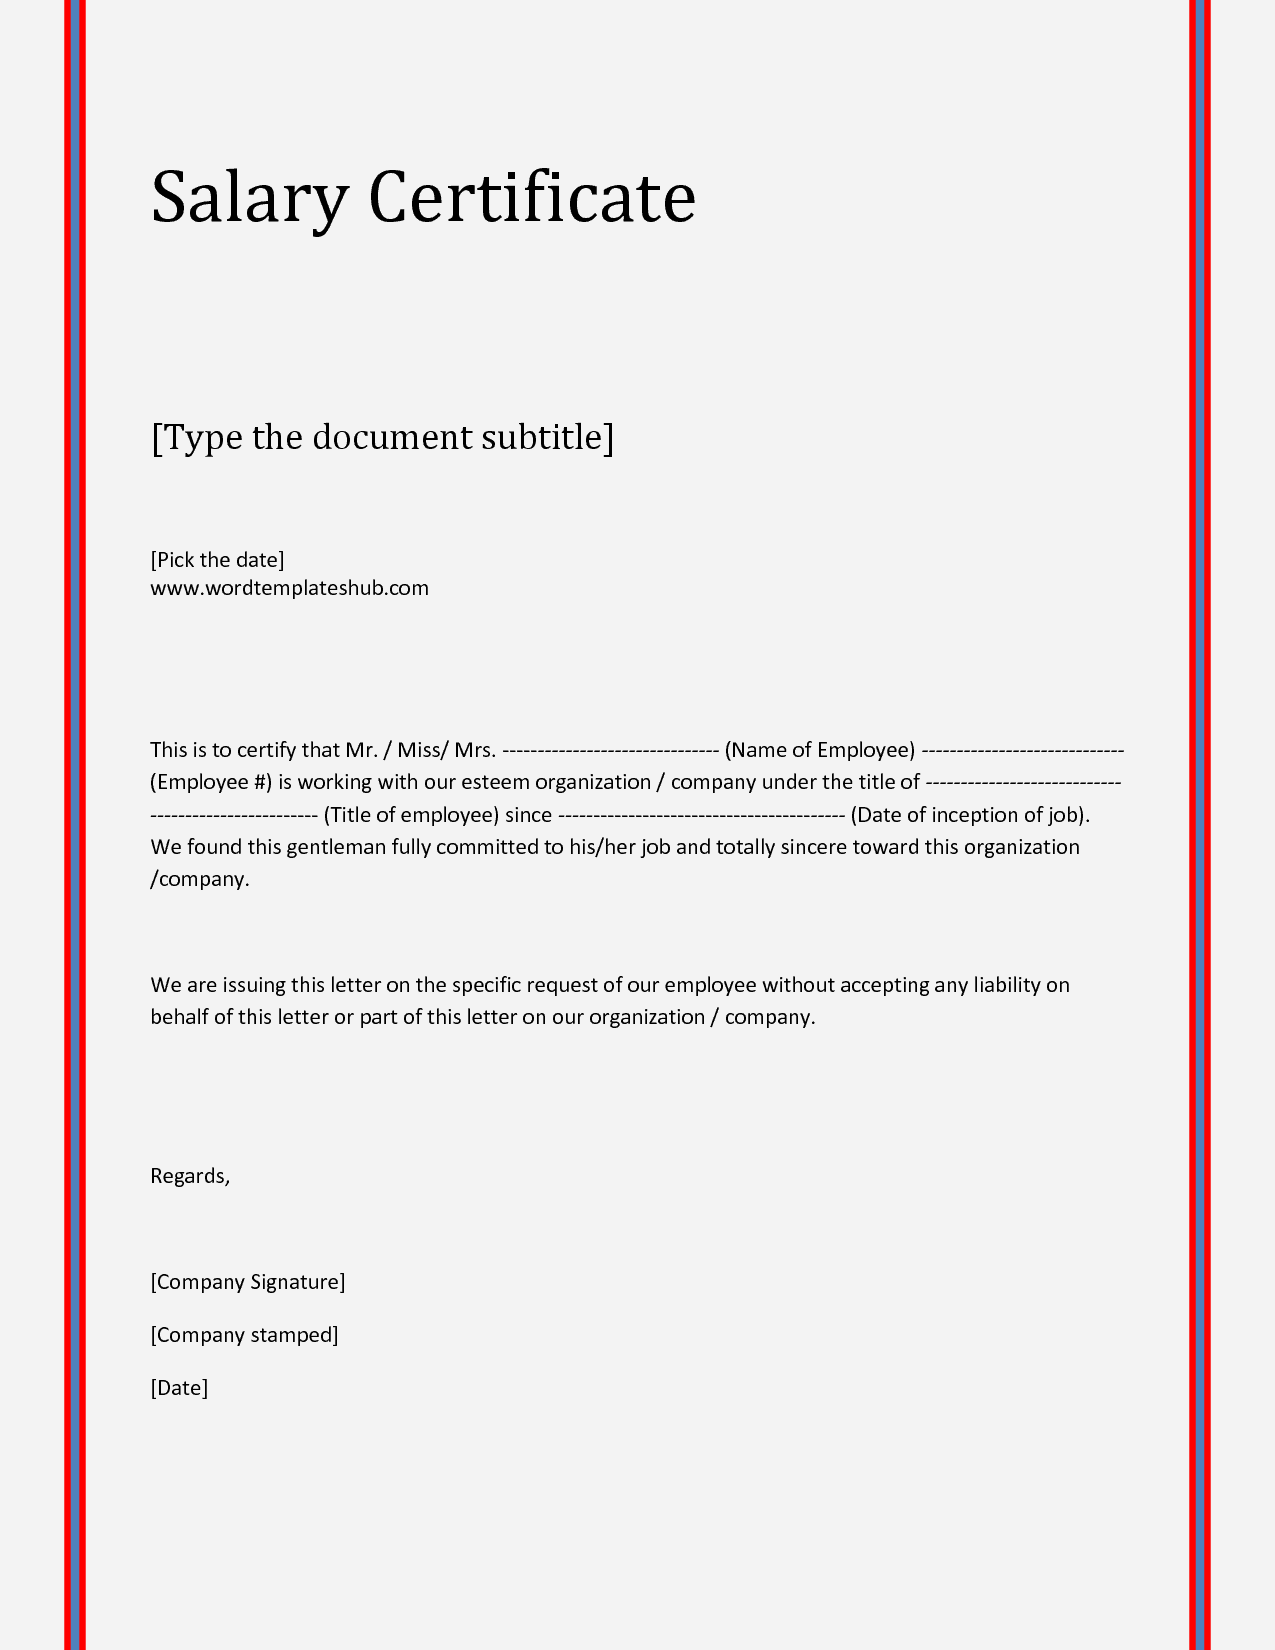 Salary-Certificate-sampe-39641 Salary Increase Letter From Employer Template on sample for employees, ask for, graphics designers, proposal sample, employer template,